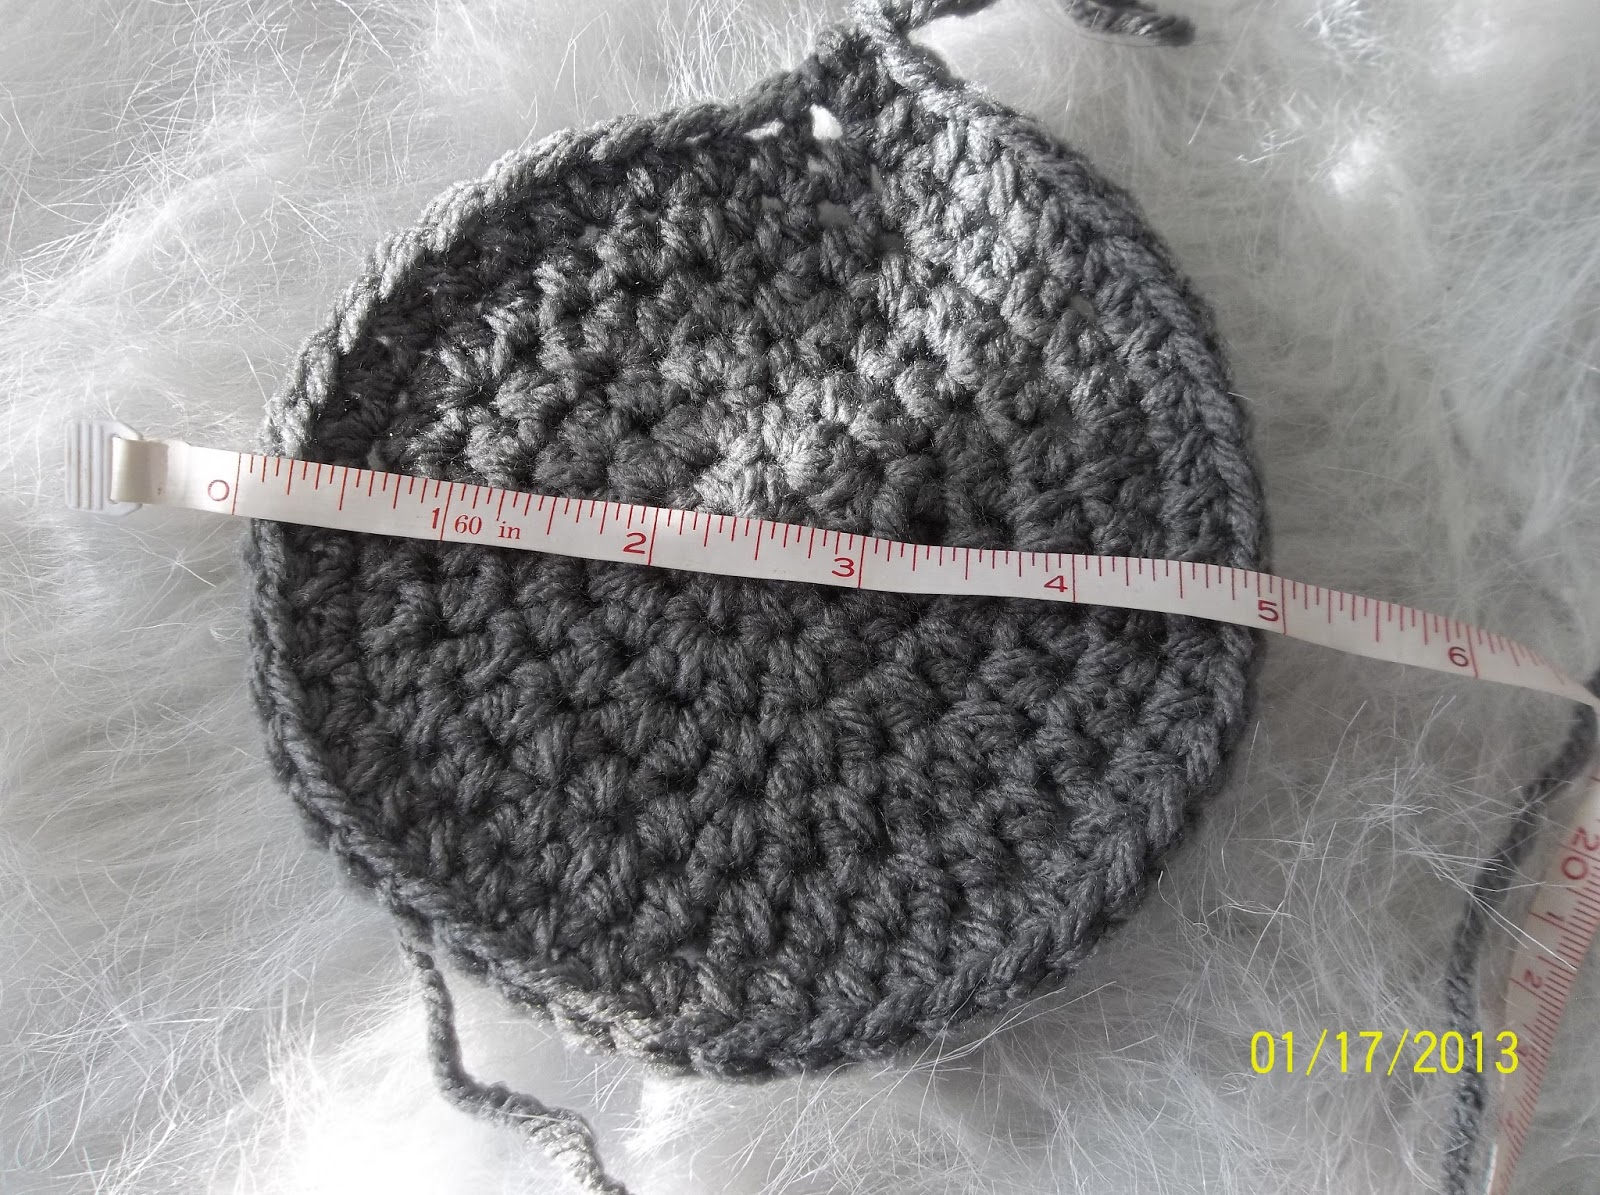 Creating beautiful things in life how to properly size crochet how to properly size crochet hats chart for correct sizing including magic circle sizes pooptronica